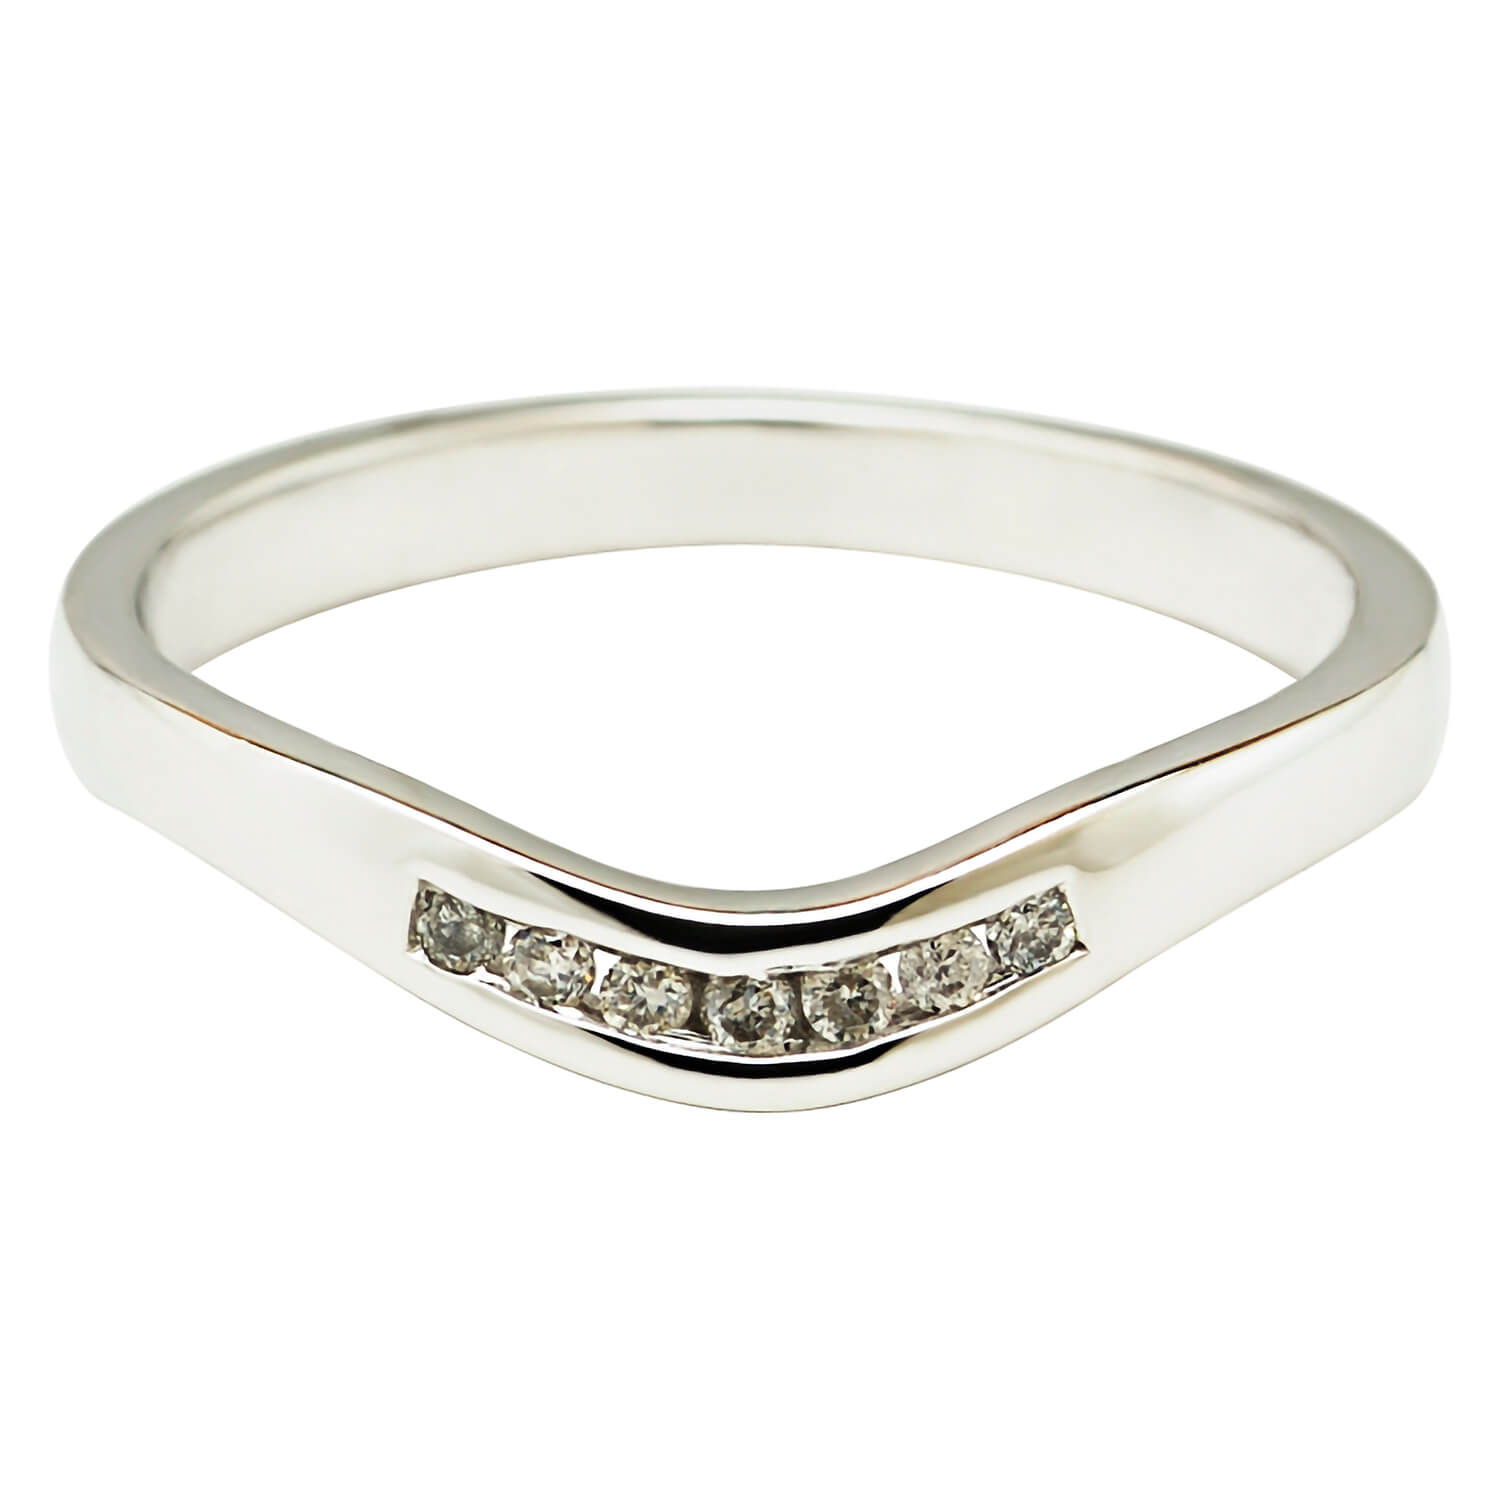 18ct White Gold Shaped Channel Set Diamond Wedding Ring